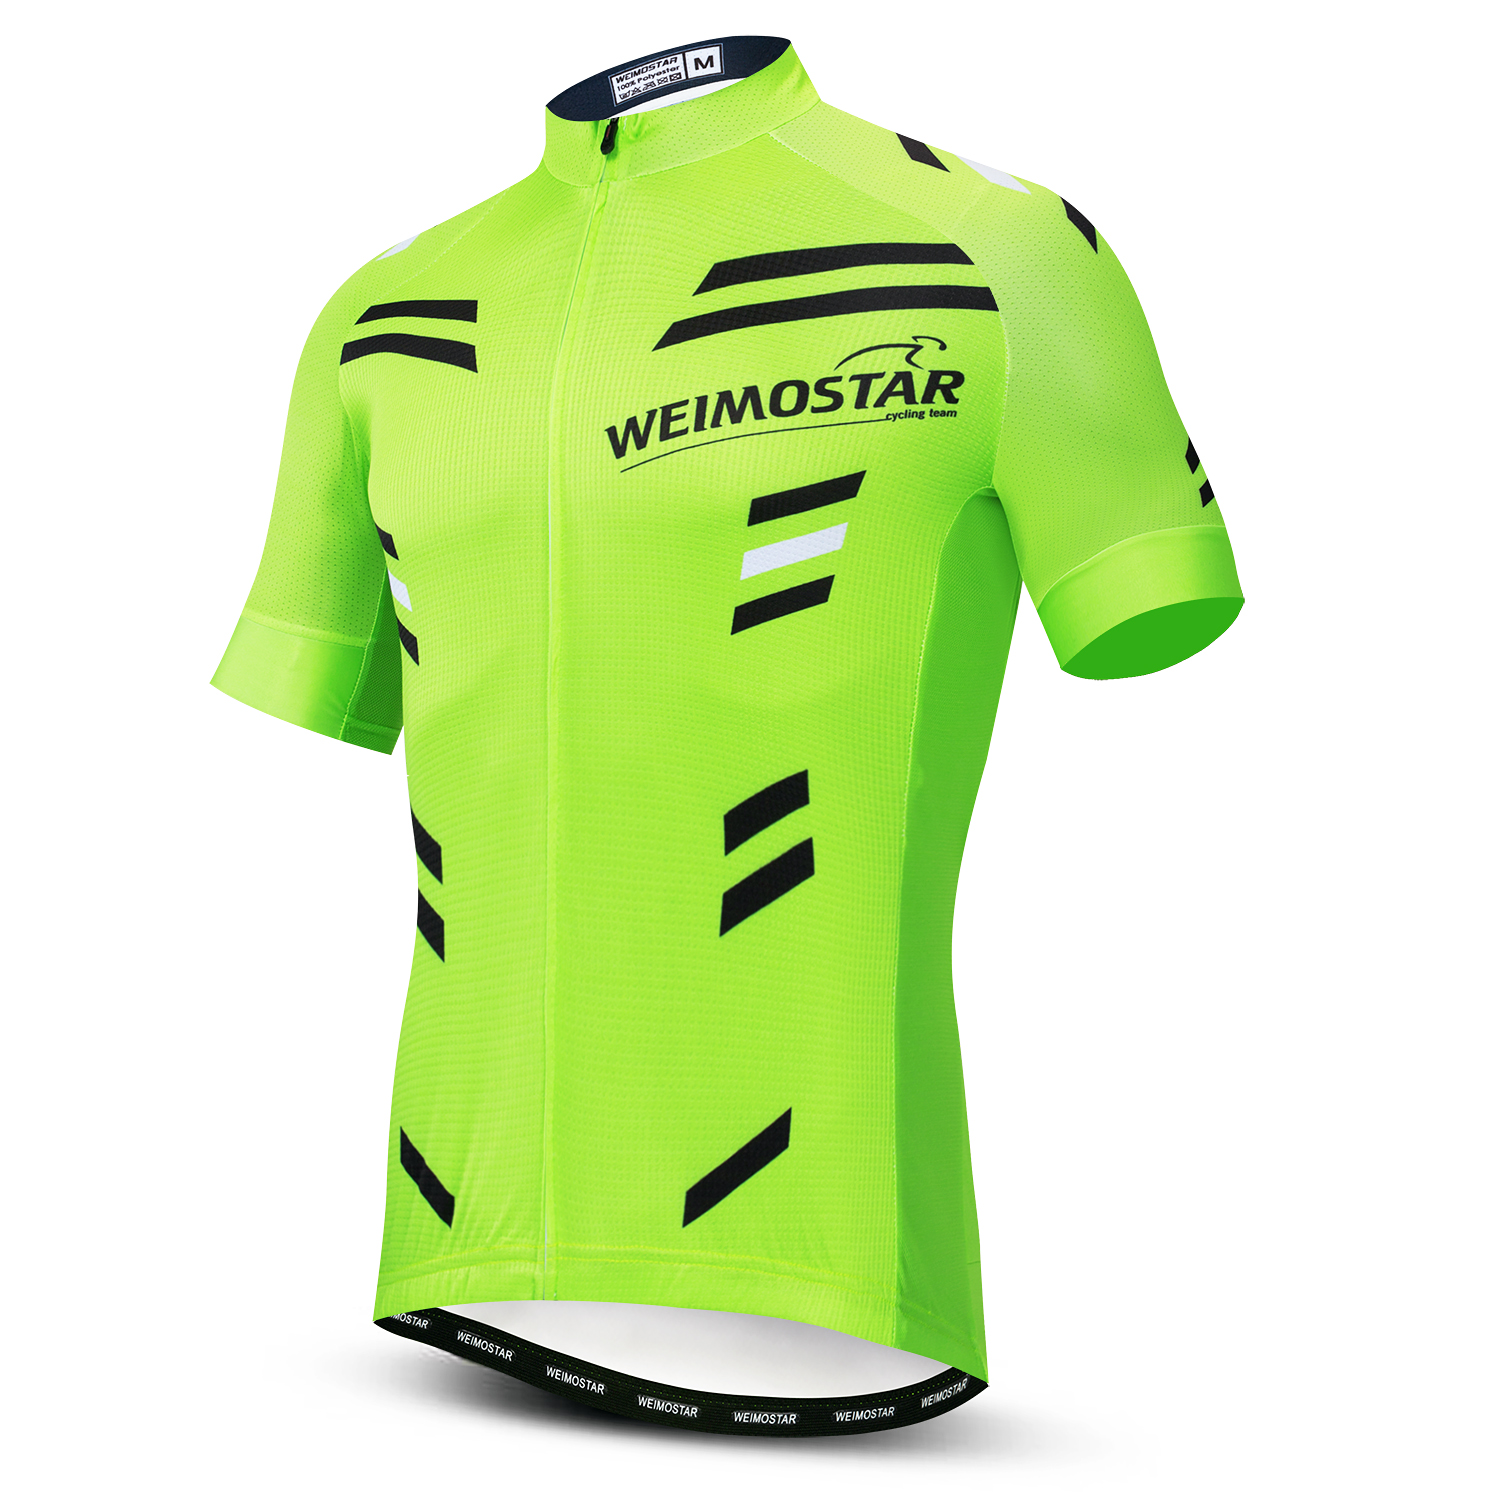 Weimostar 2019 Cycling Jersey Men 39 s Bike Jerseys Road MTB Bicycle Tops Pro Team Ropa Maillot Ciclismo Racing Shirt Green White in Cycling Jerseys from Sports amp Entertainment